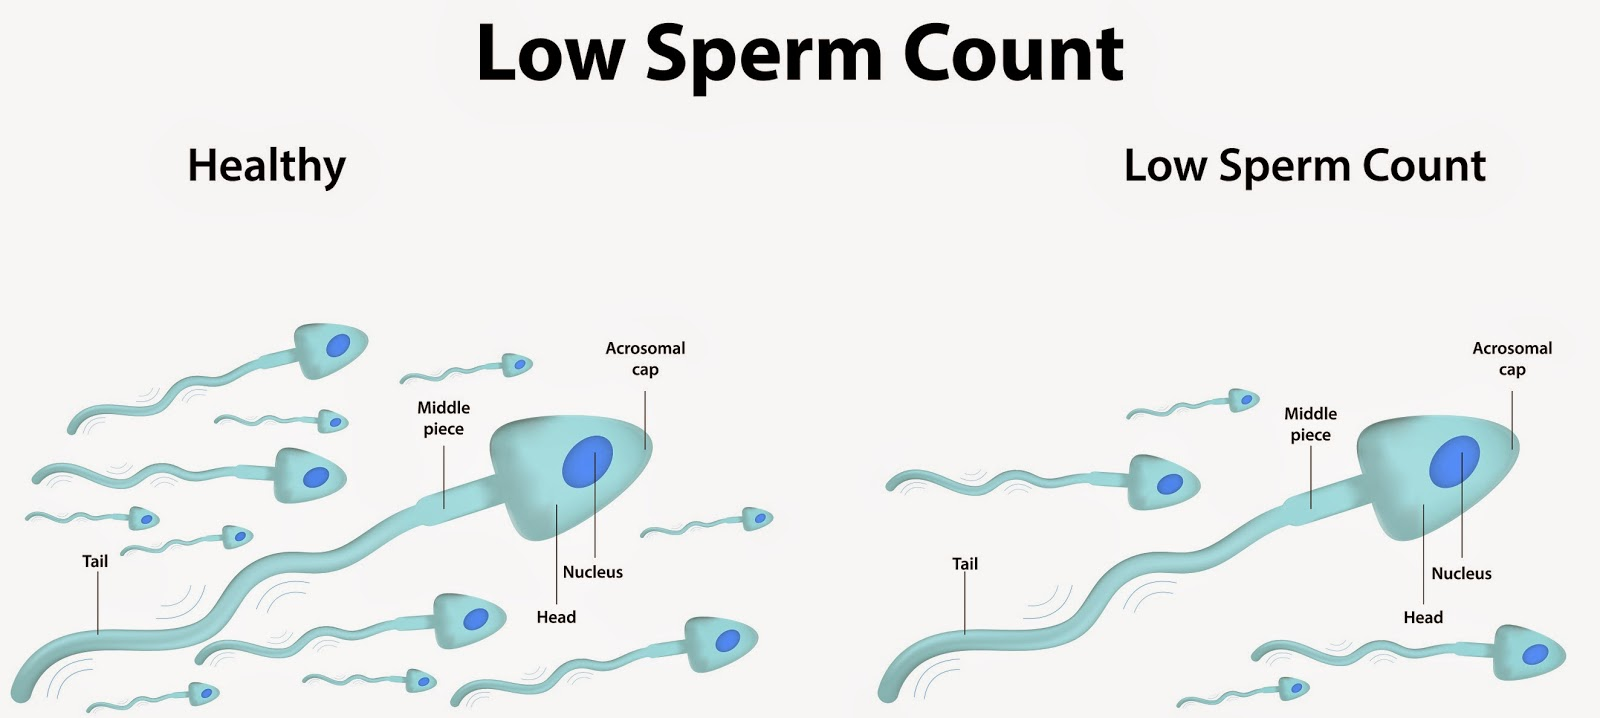 How do i check my sperm count